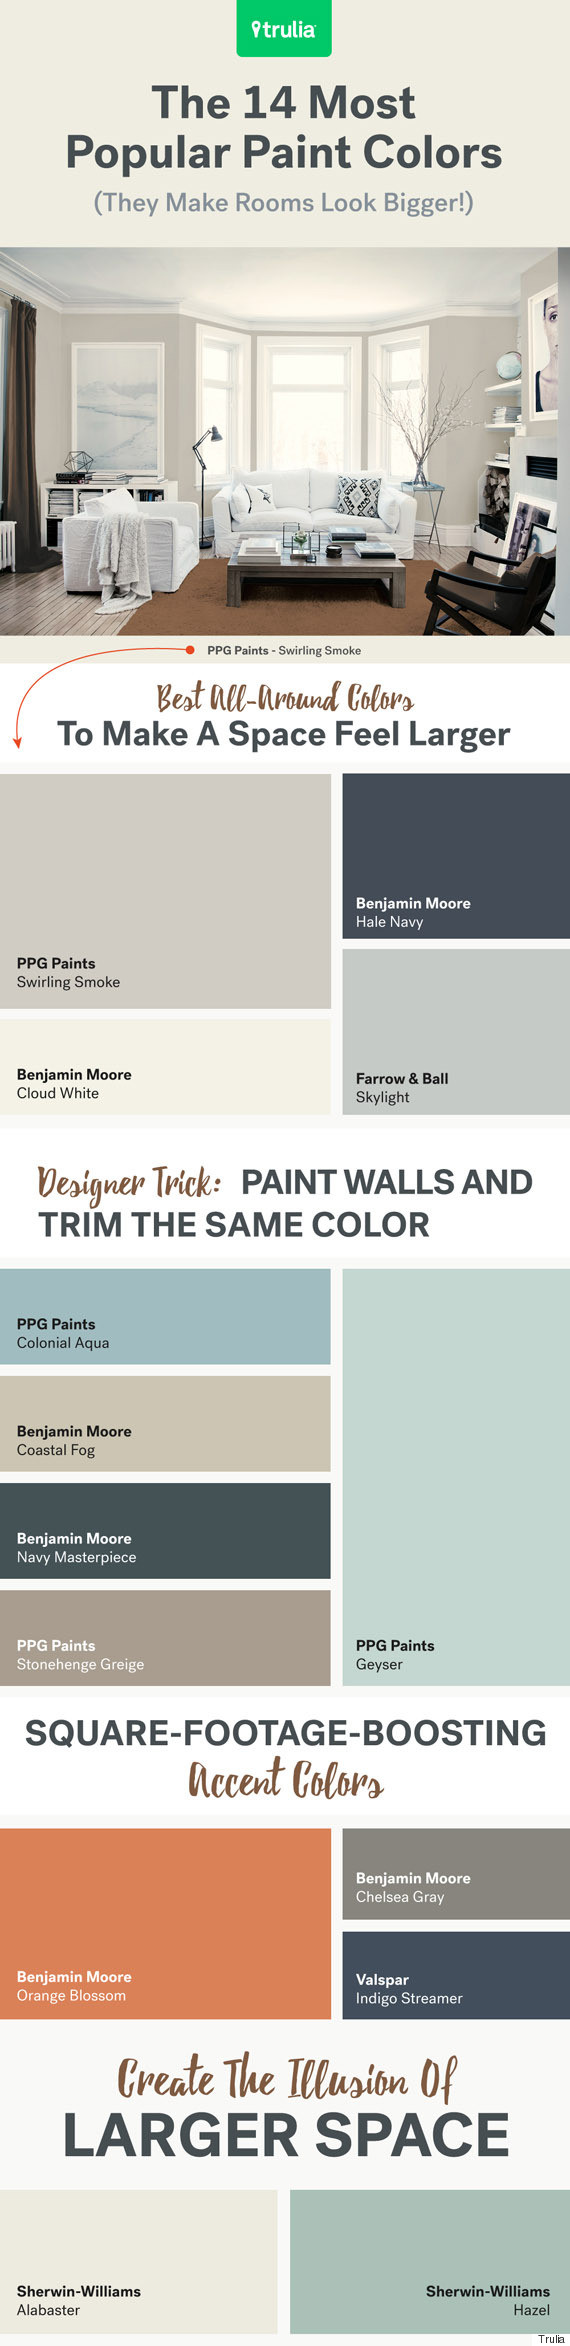 Paint Colors That Make A Room Look Bigger the 14 most popular paint colors (they make a room look bigger